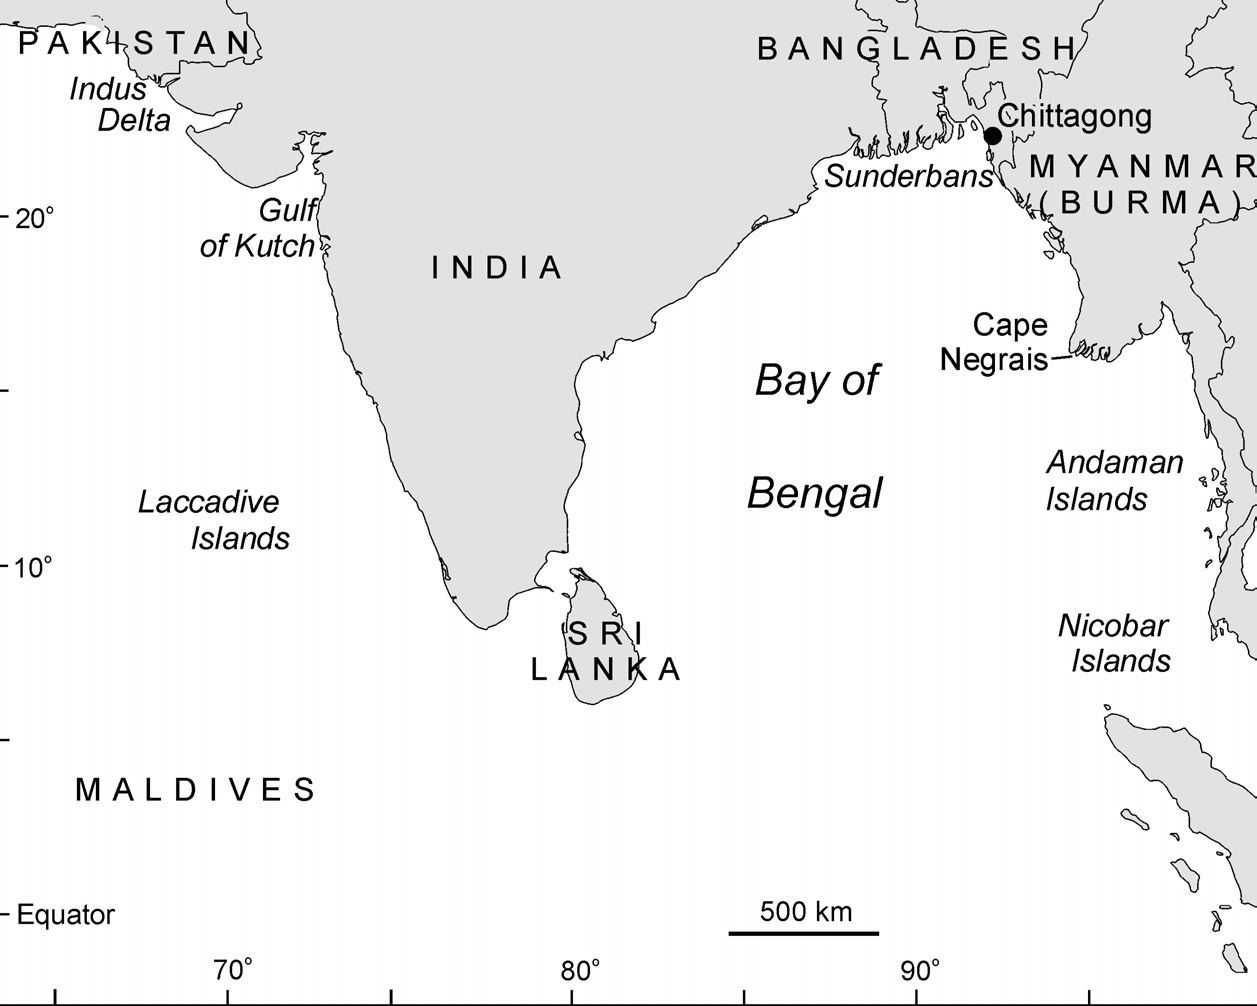 INDIA WITH THE ANDAMAN AND NICOBAR ISLANDS, AND SRI LANKA Chapter 3 India and Sri Lanka Distribution and Abundance Dugongs occur along the west coast of Sri Lanka, and in India in the Gulf of Kutch